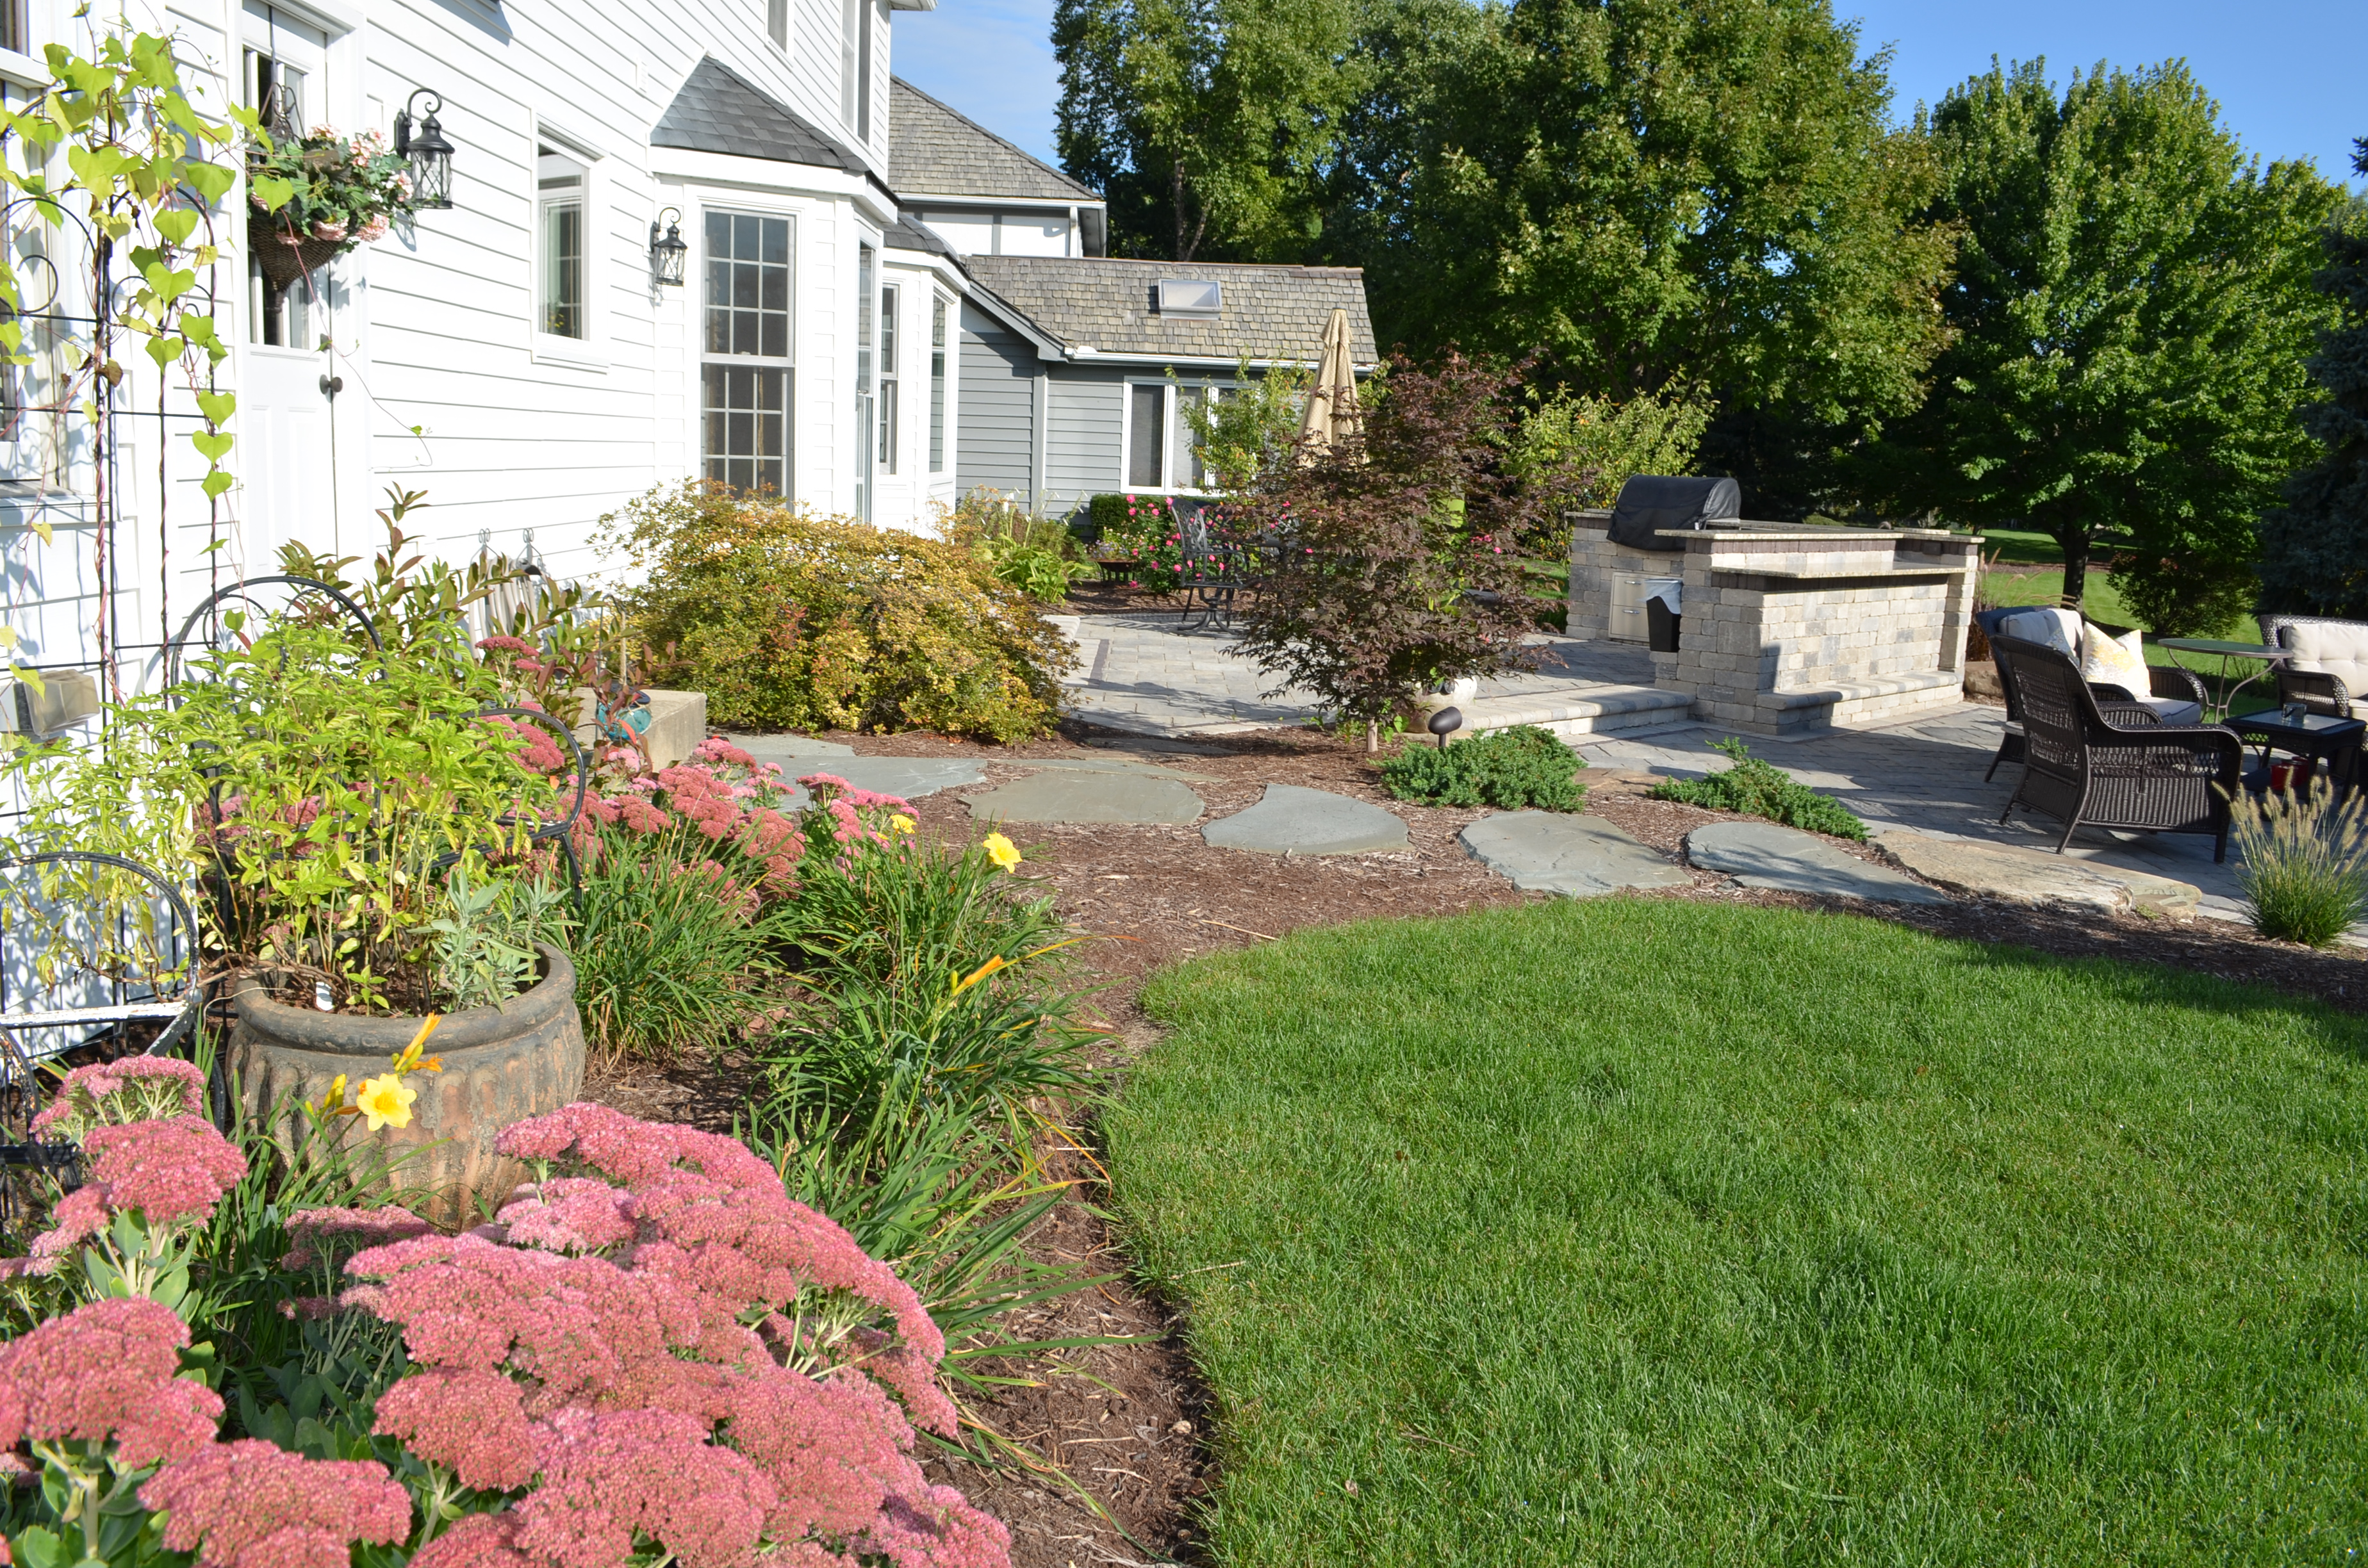 Backyard Landscaping Tips | Simple Tips for Low ... on Low Maintenance Back Garden Ideas id=58796